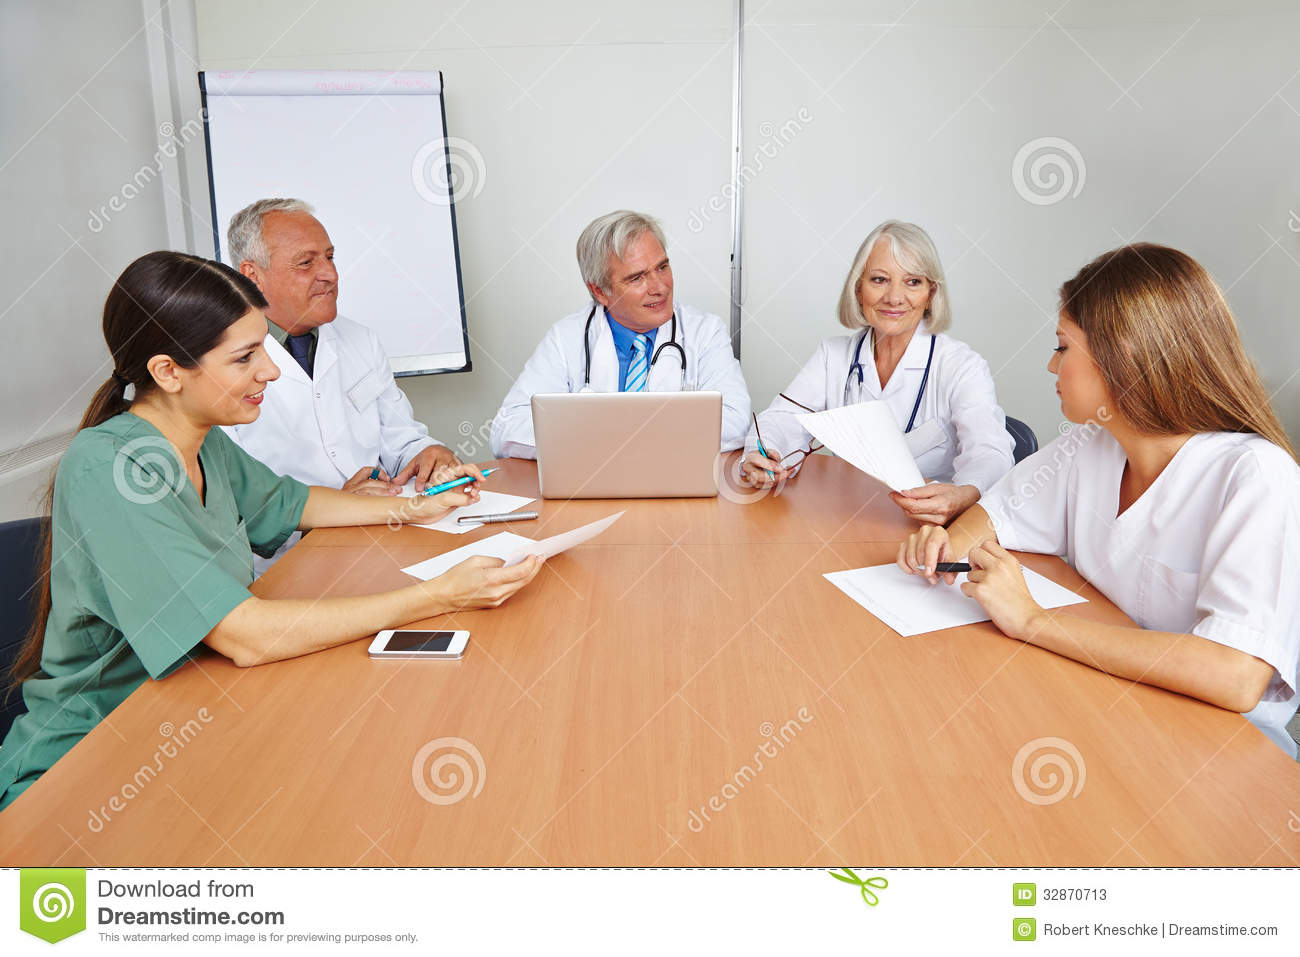 group interviews how to prepare